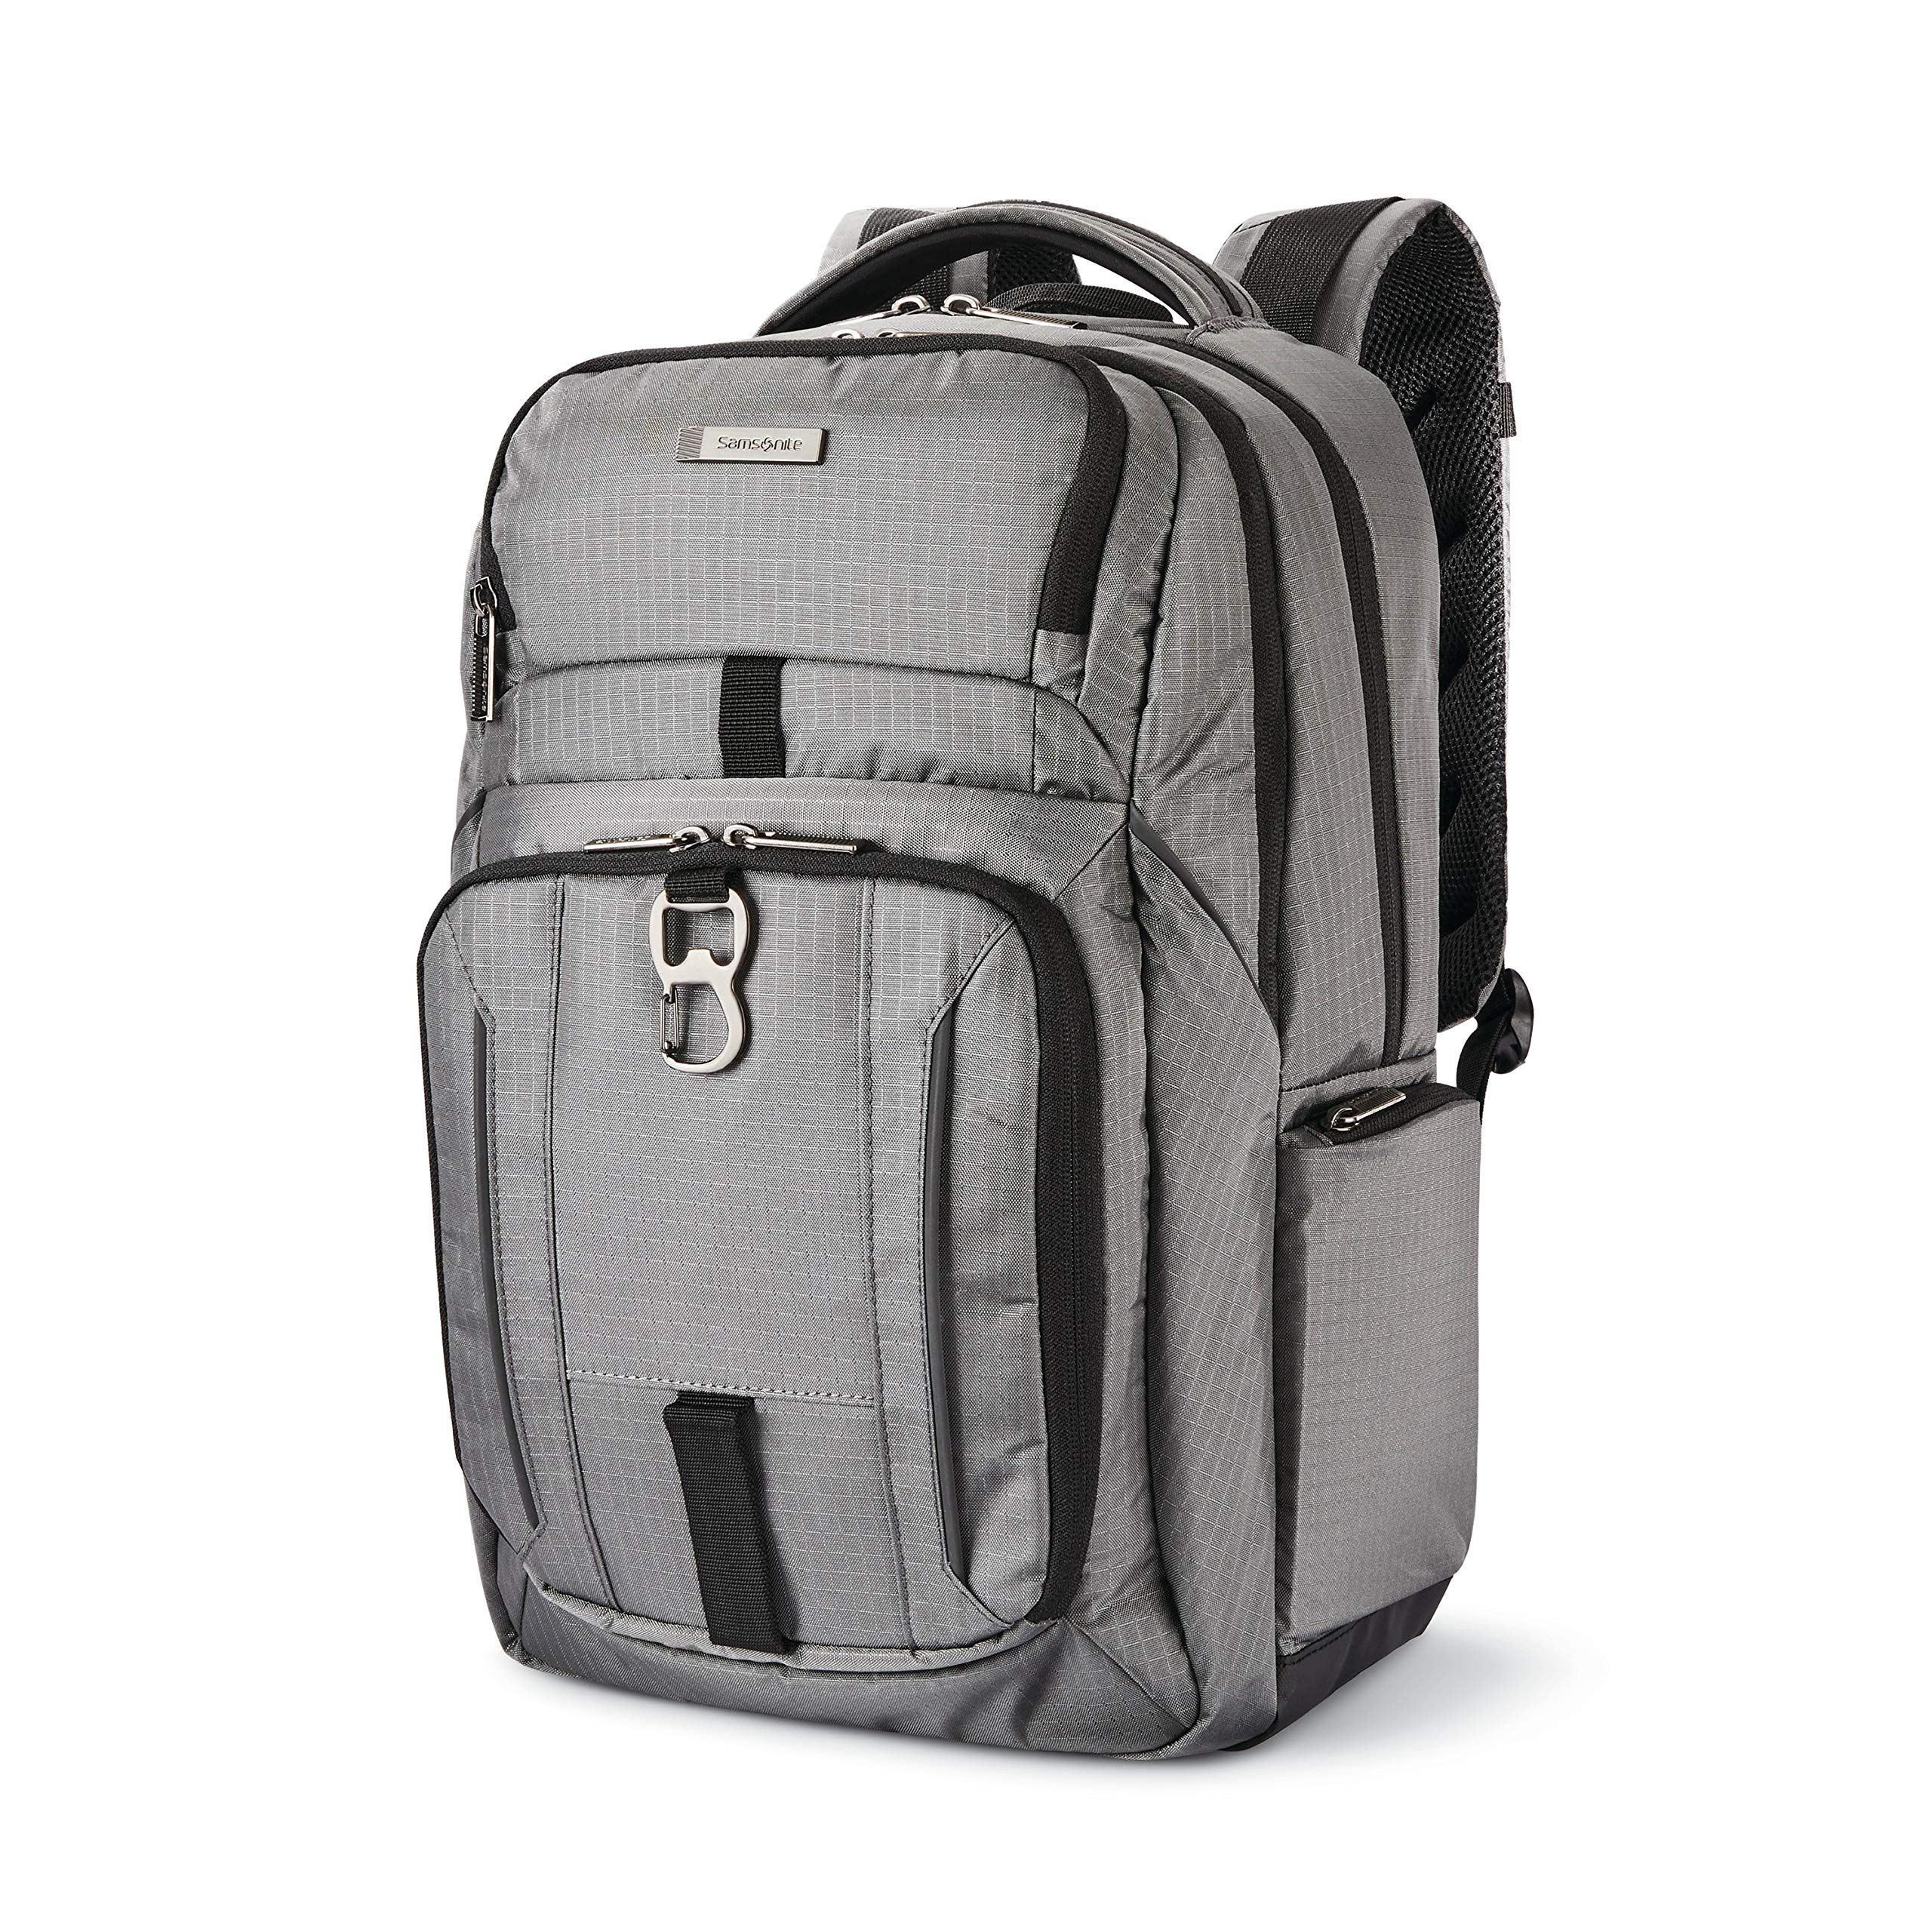 쌤소나이트 테크토닉 비지니스 백팩 Samsonite Tectonic Lifestyle Easy Rider Business Backpack, Steel Grey